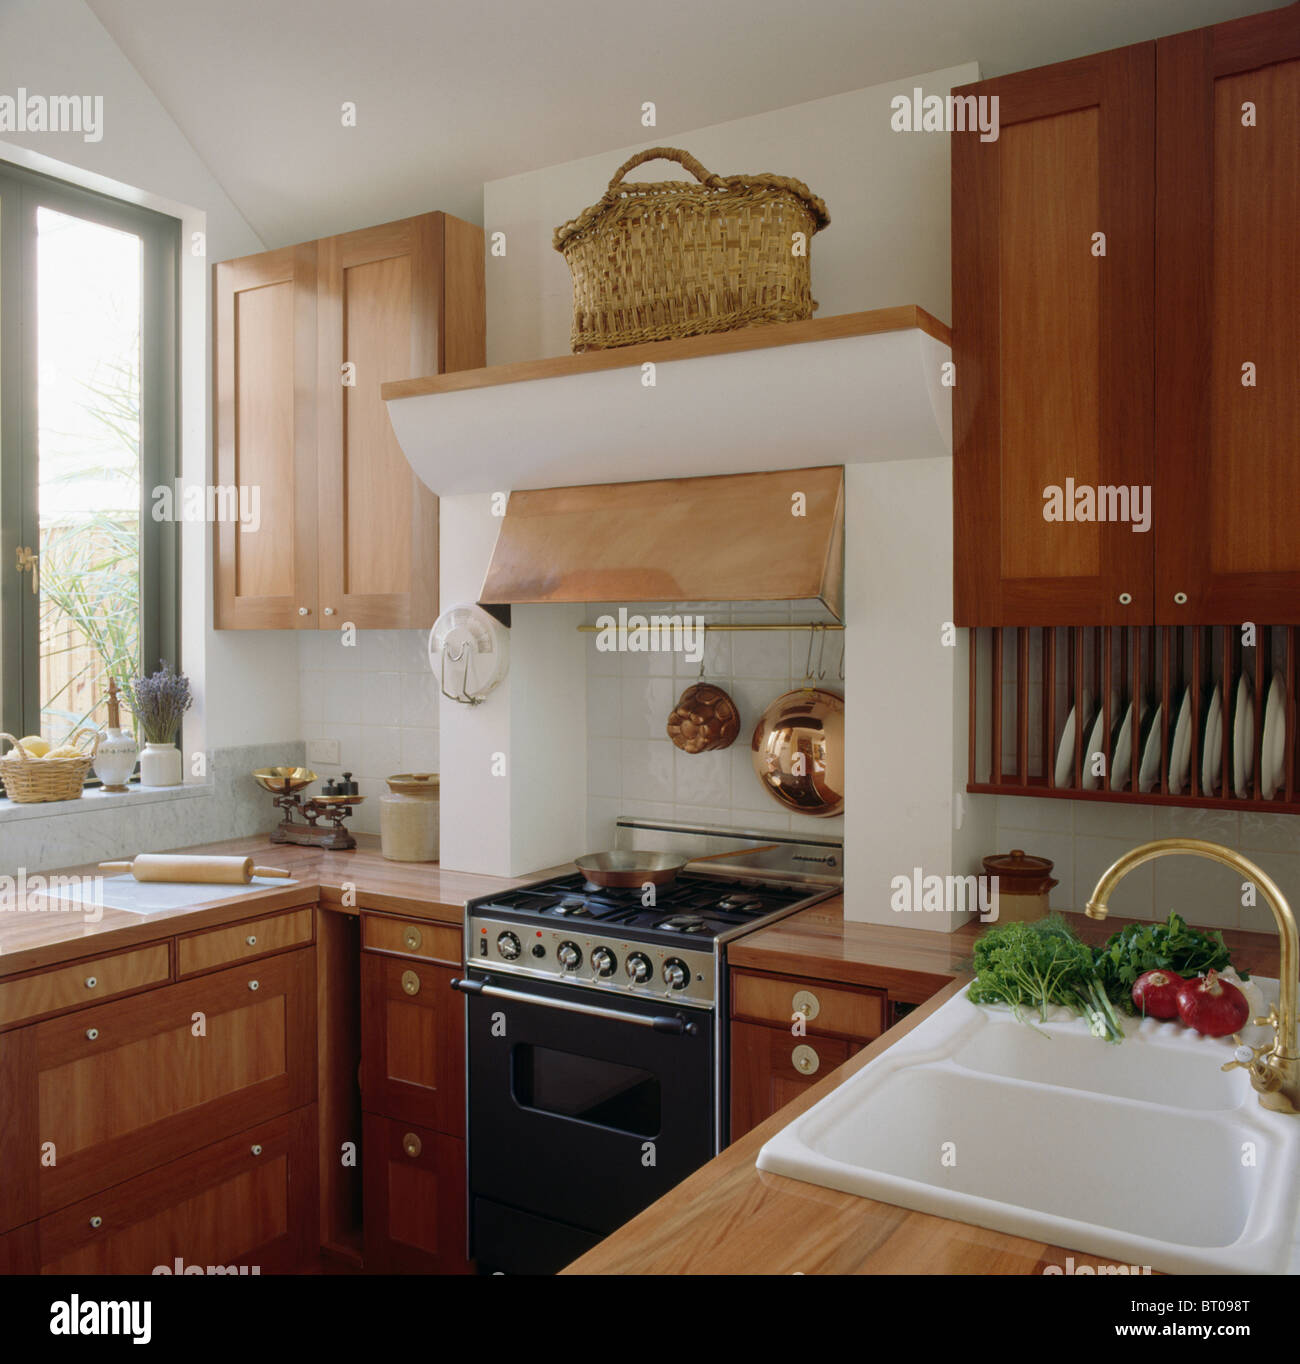 Small Fitted Kitchen Basket On Shelf Above Black Oven In Small Kitchen With Pale Wood